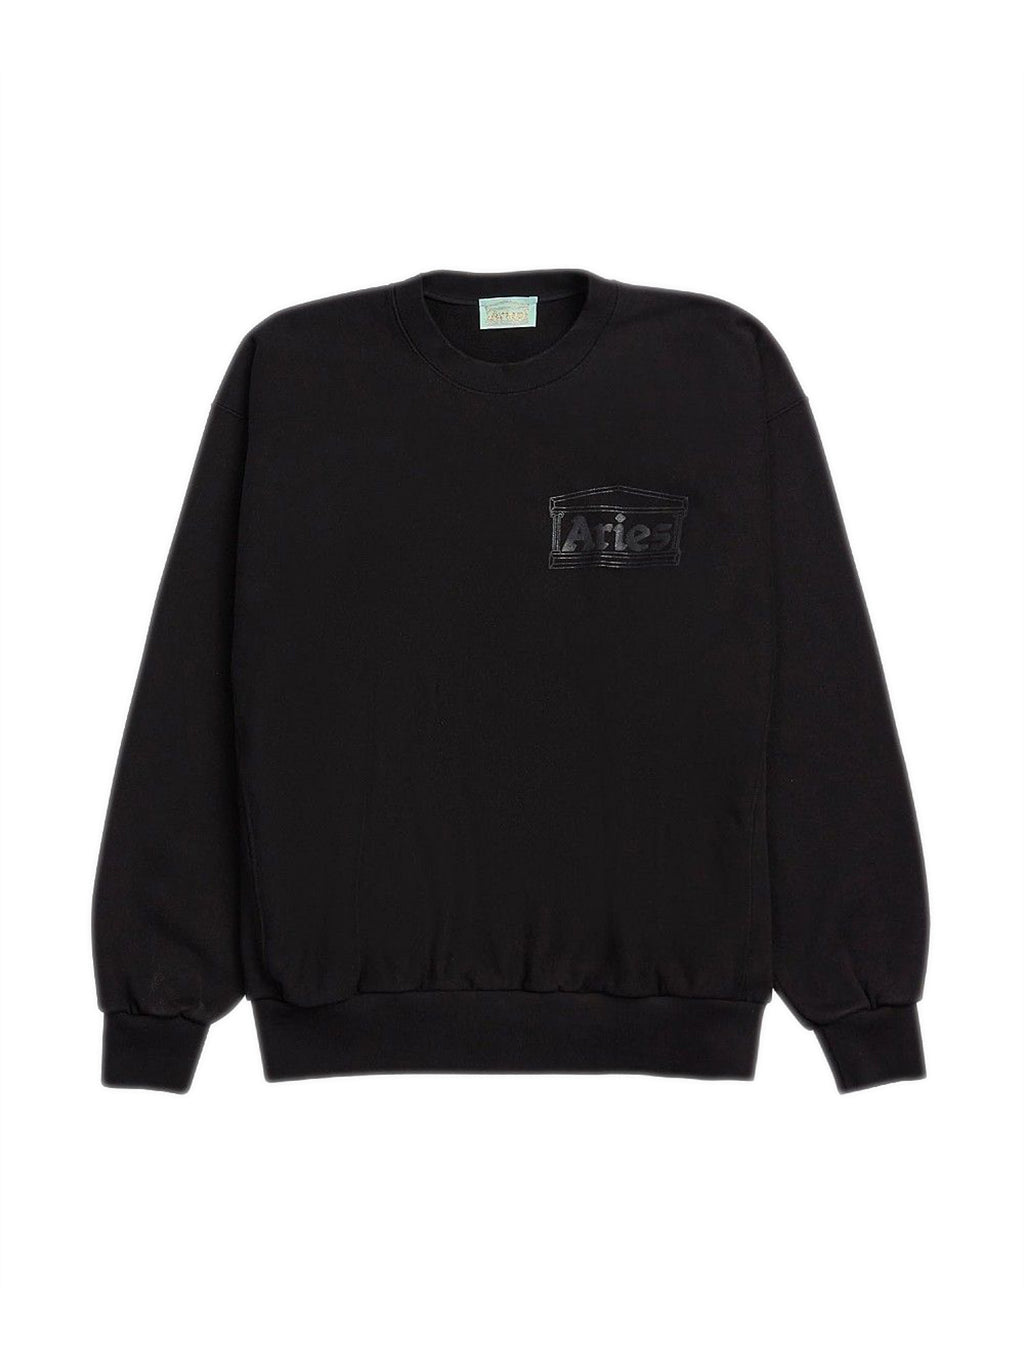 Black Temple Sweatshirt